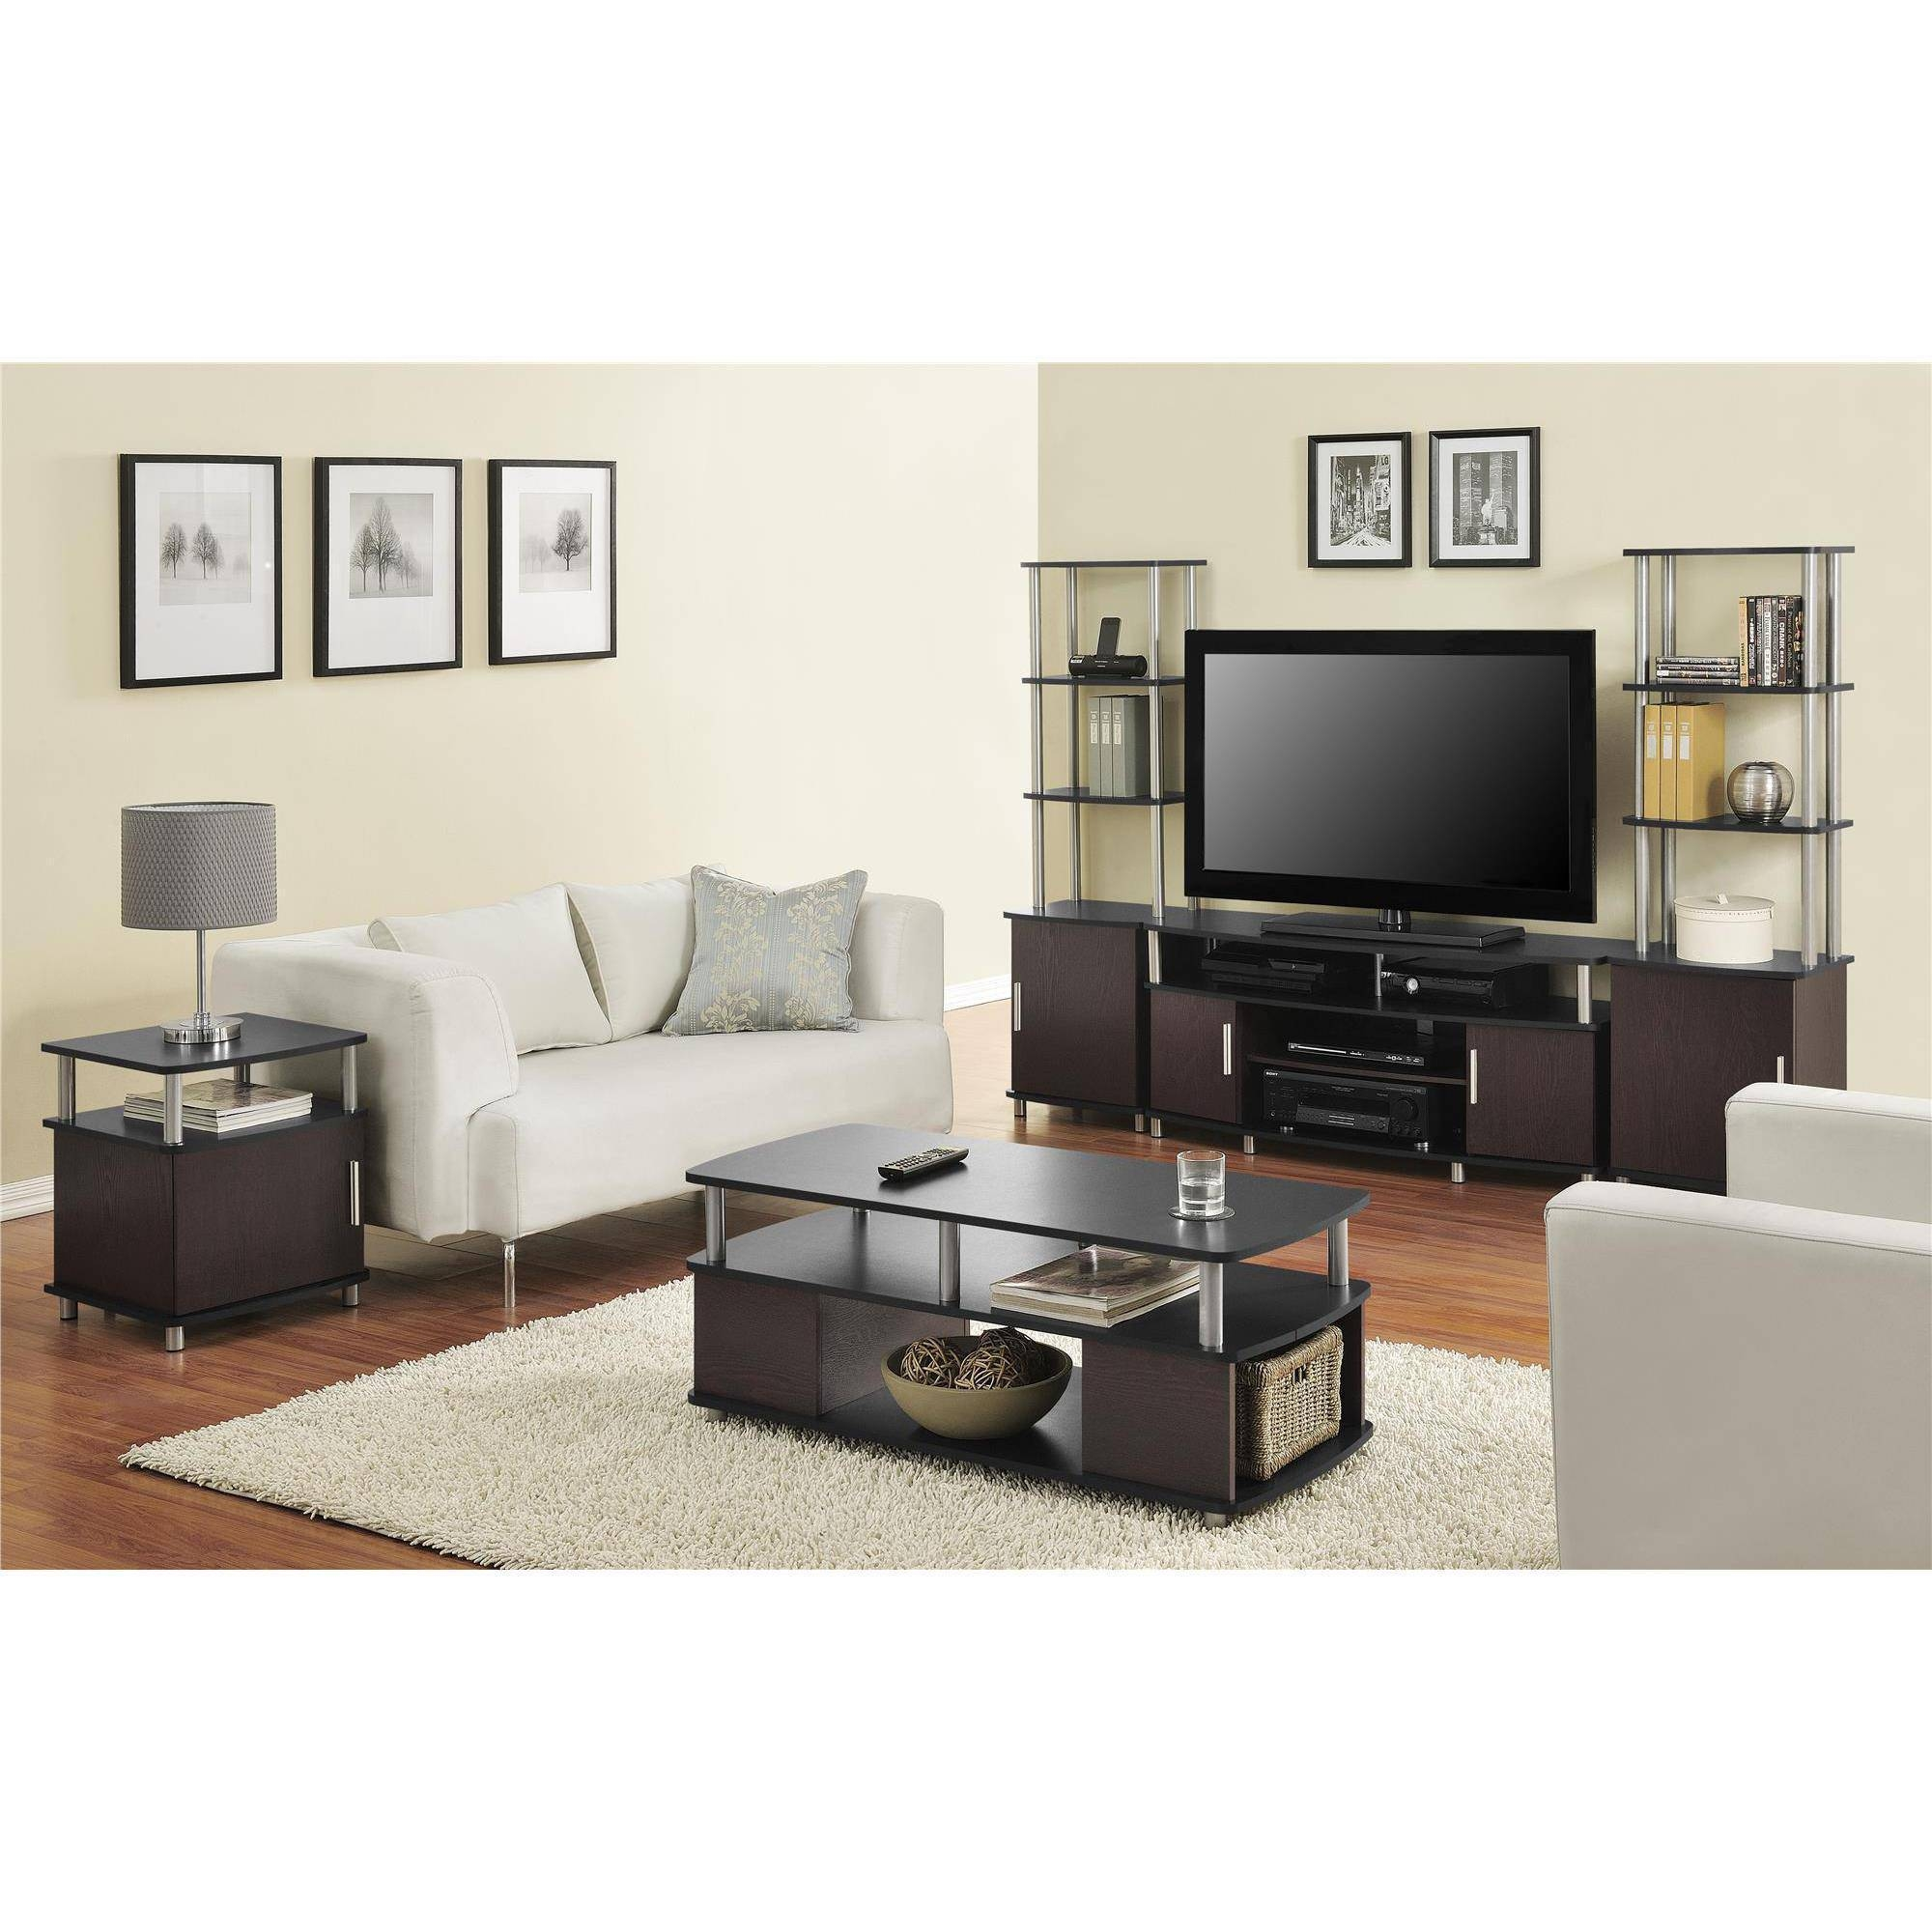 Tv Stand Coffee Table End Table Set | Coffee Tables Decoration throughout Tv Unit And Coffee Table Sets (Image 26 of 30)